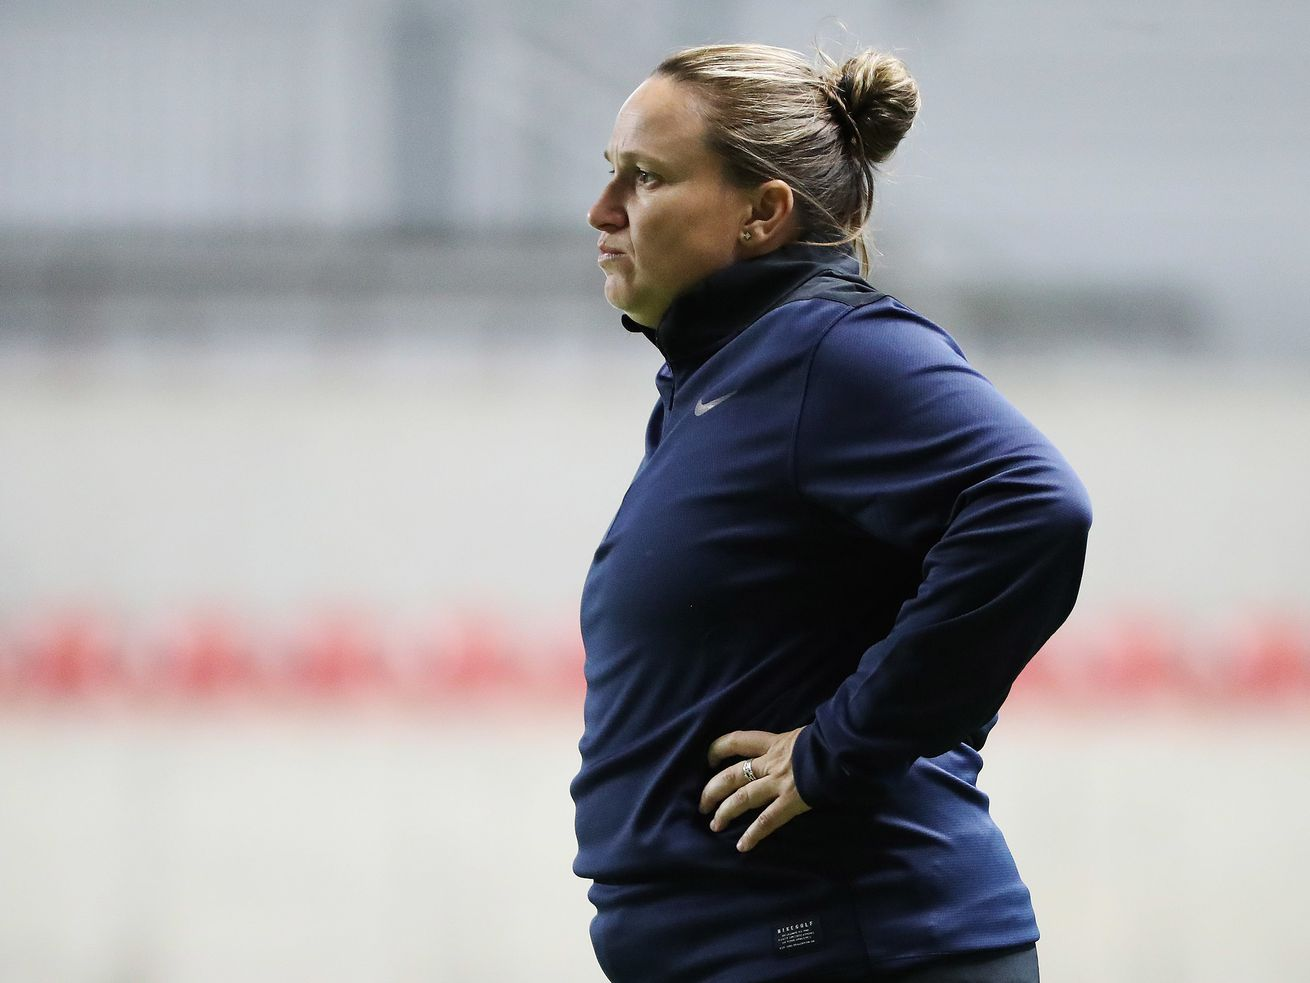 Utah Royals FC-Reign FC game postponed because of 'extreme weather'